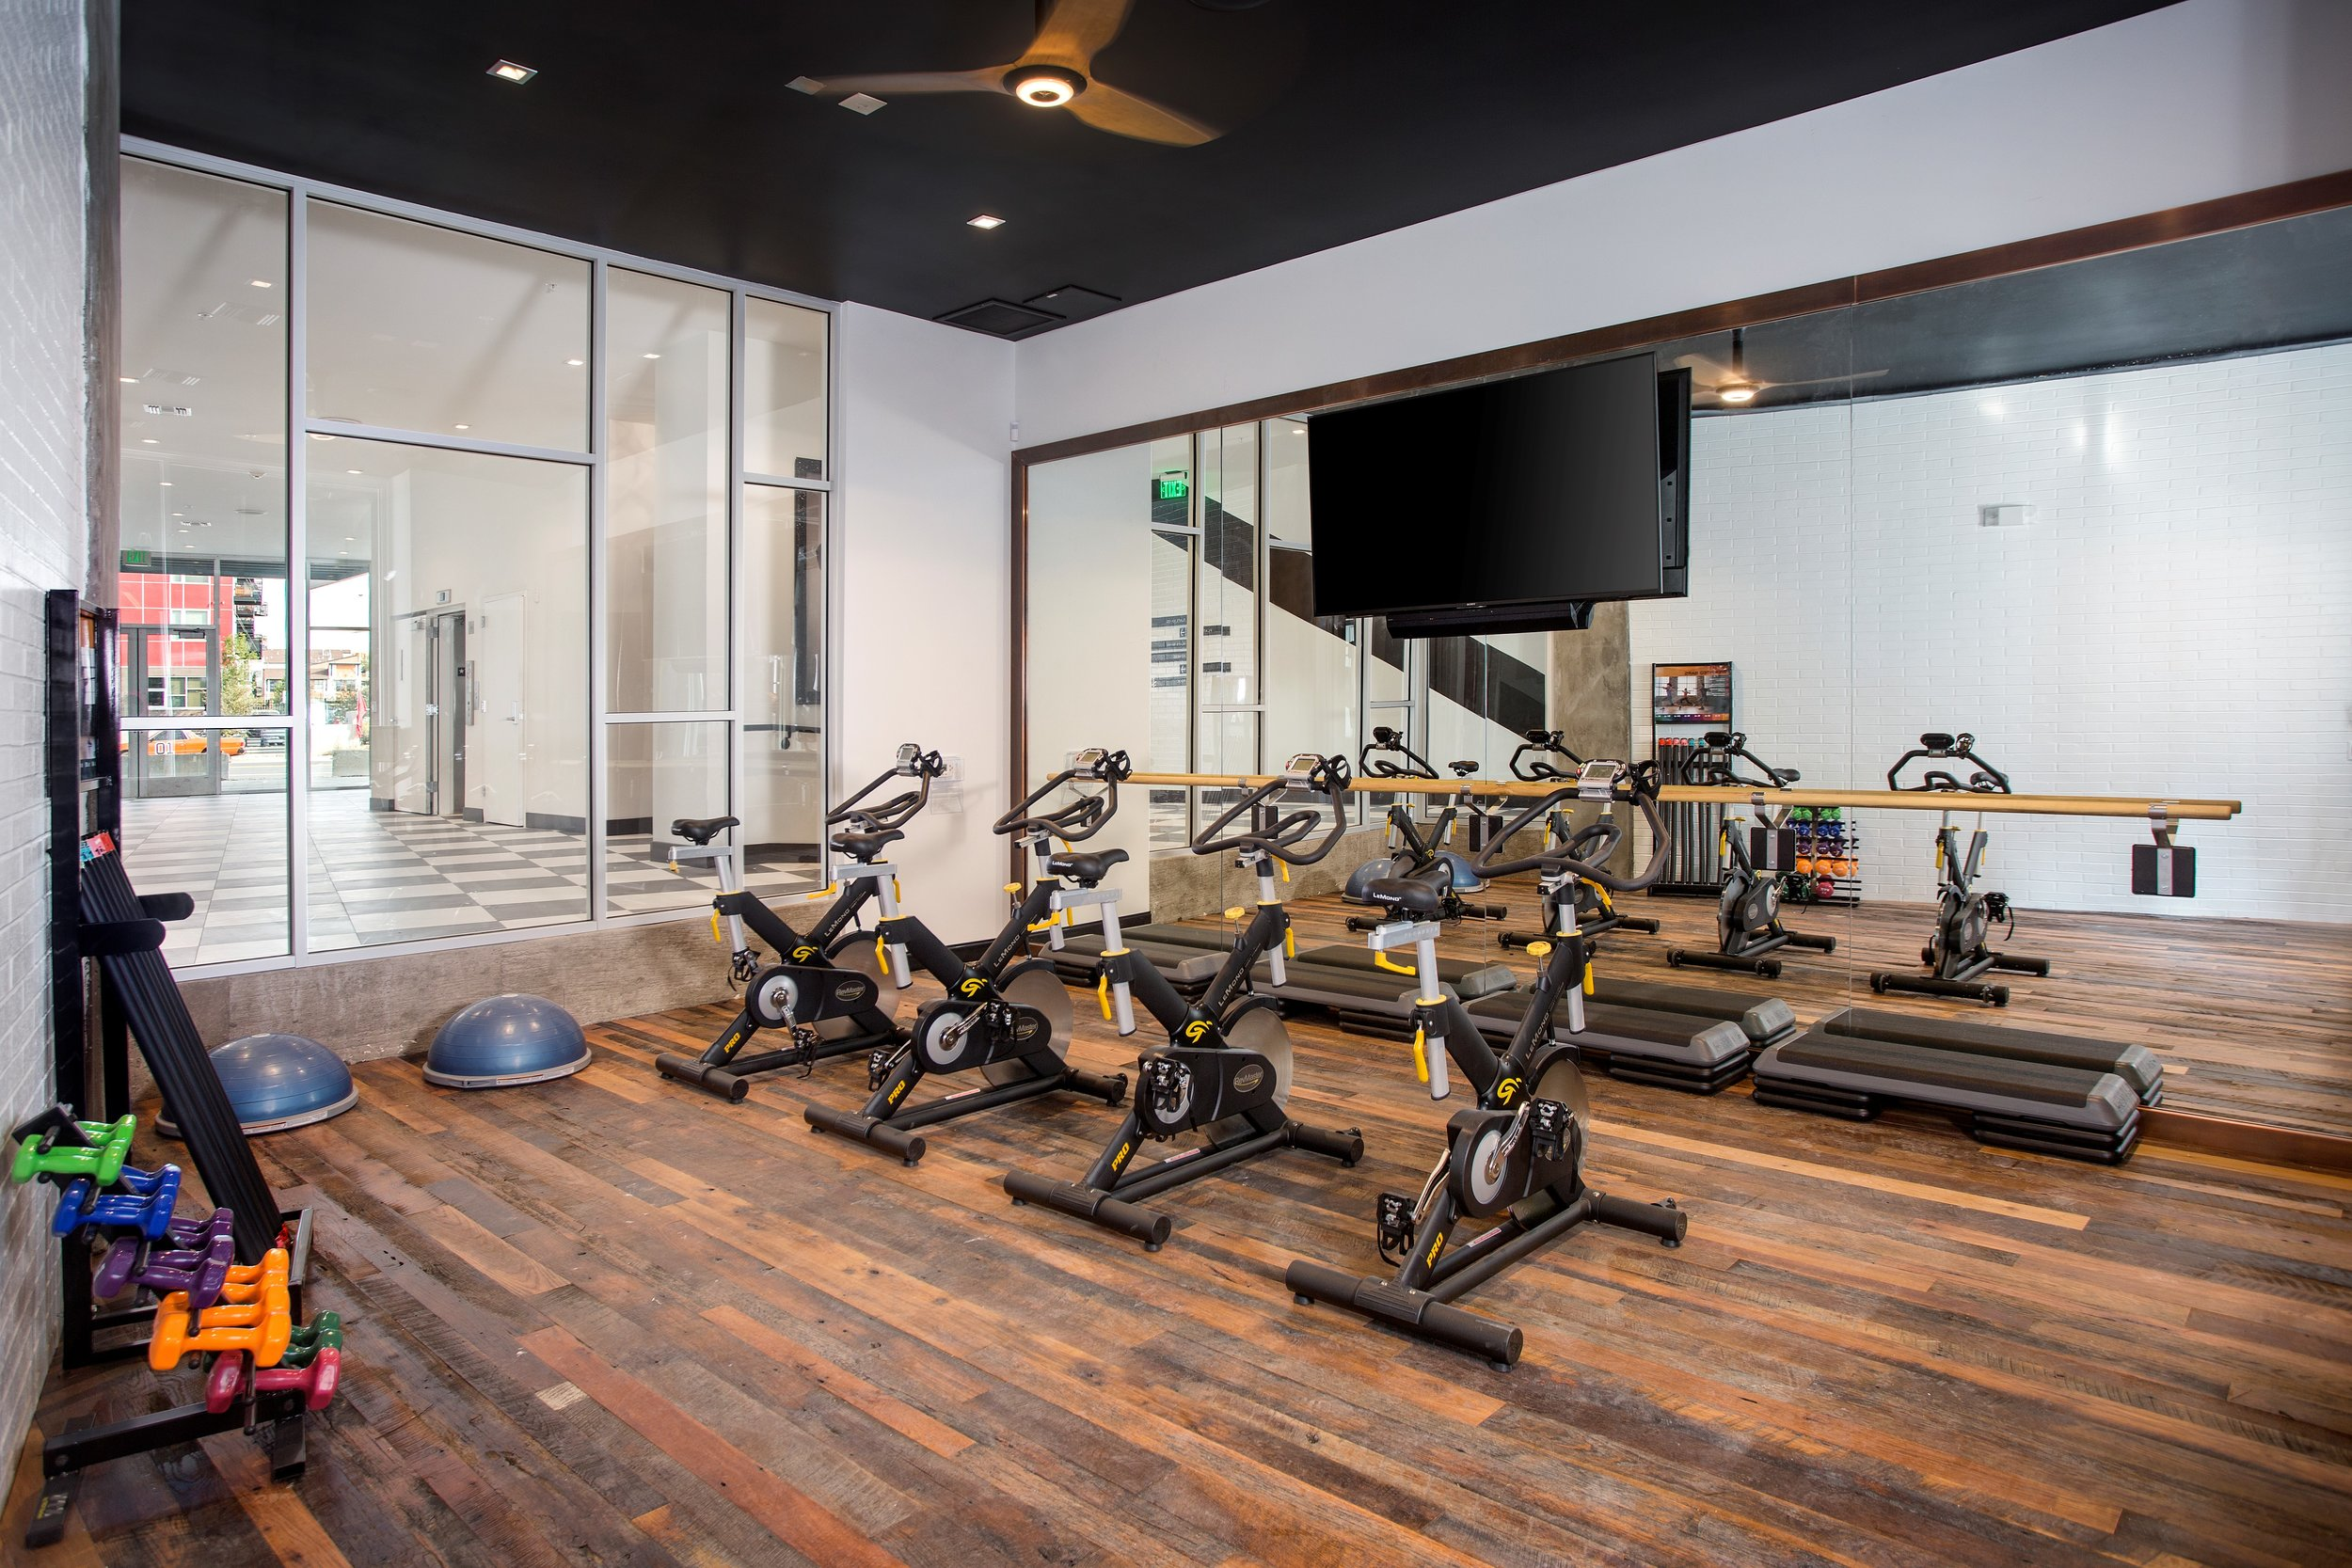 11-Personal Yoga Studio Complete with Fitness-On-Demand.jpg